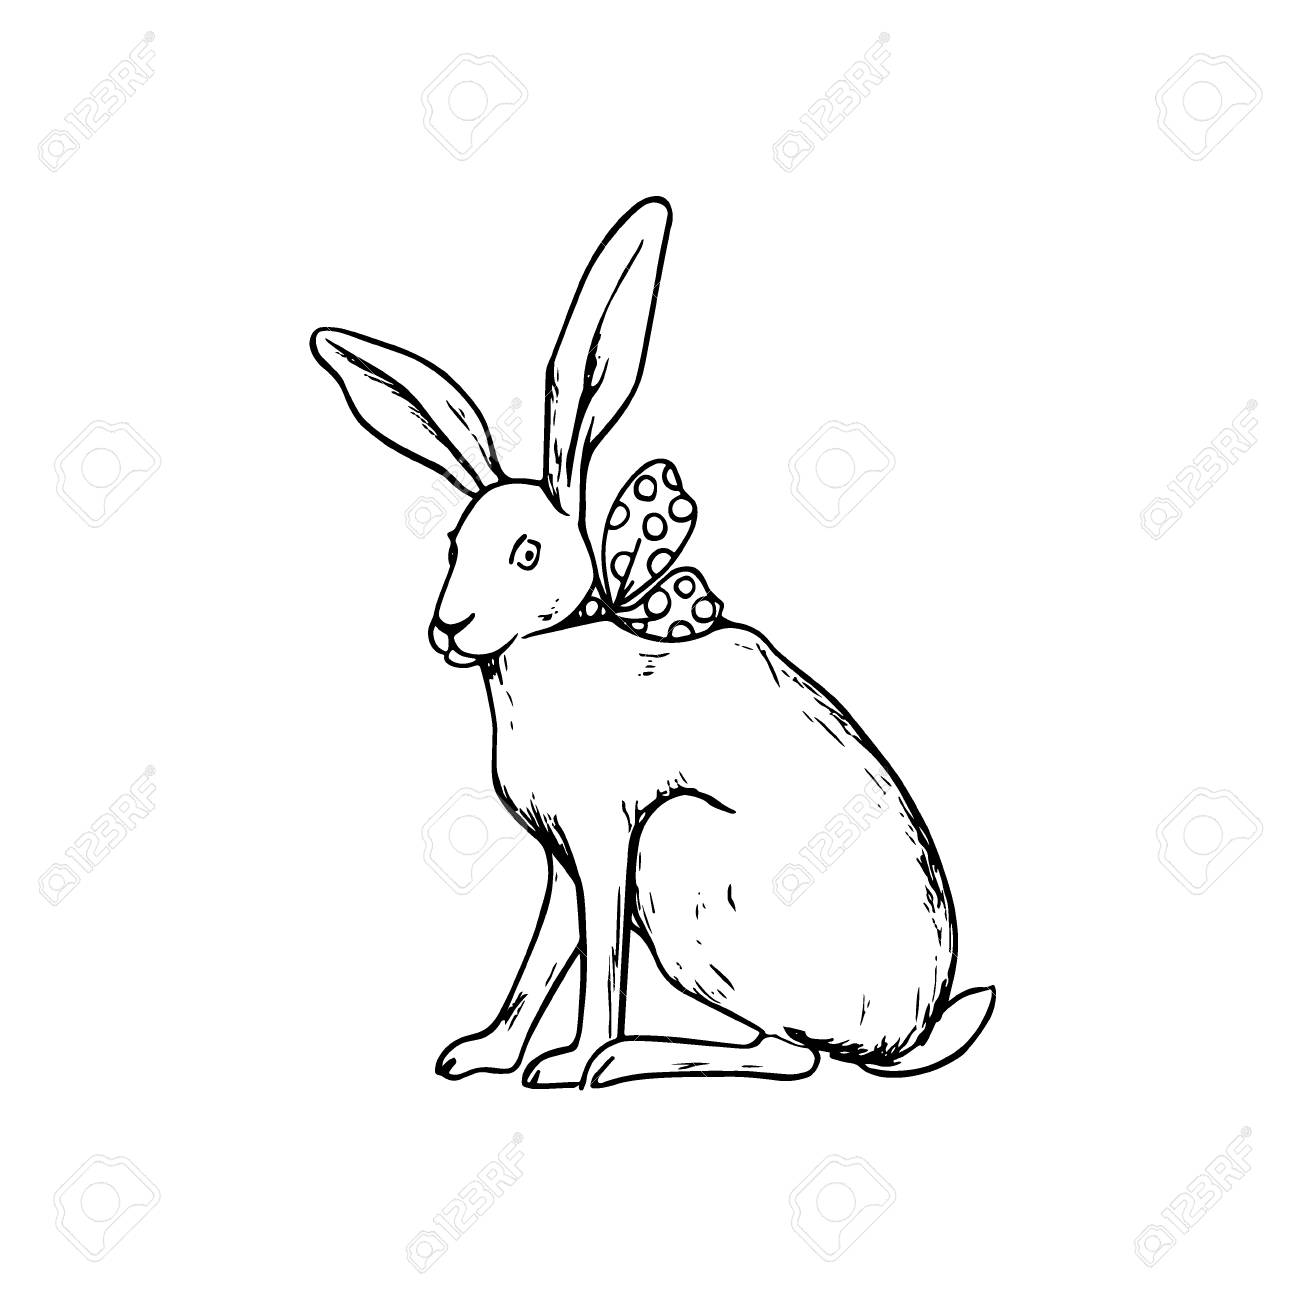 1300x1300 Hand Drawn Hare Stock Photo, Picture And Royalty Free Image. Image